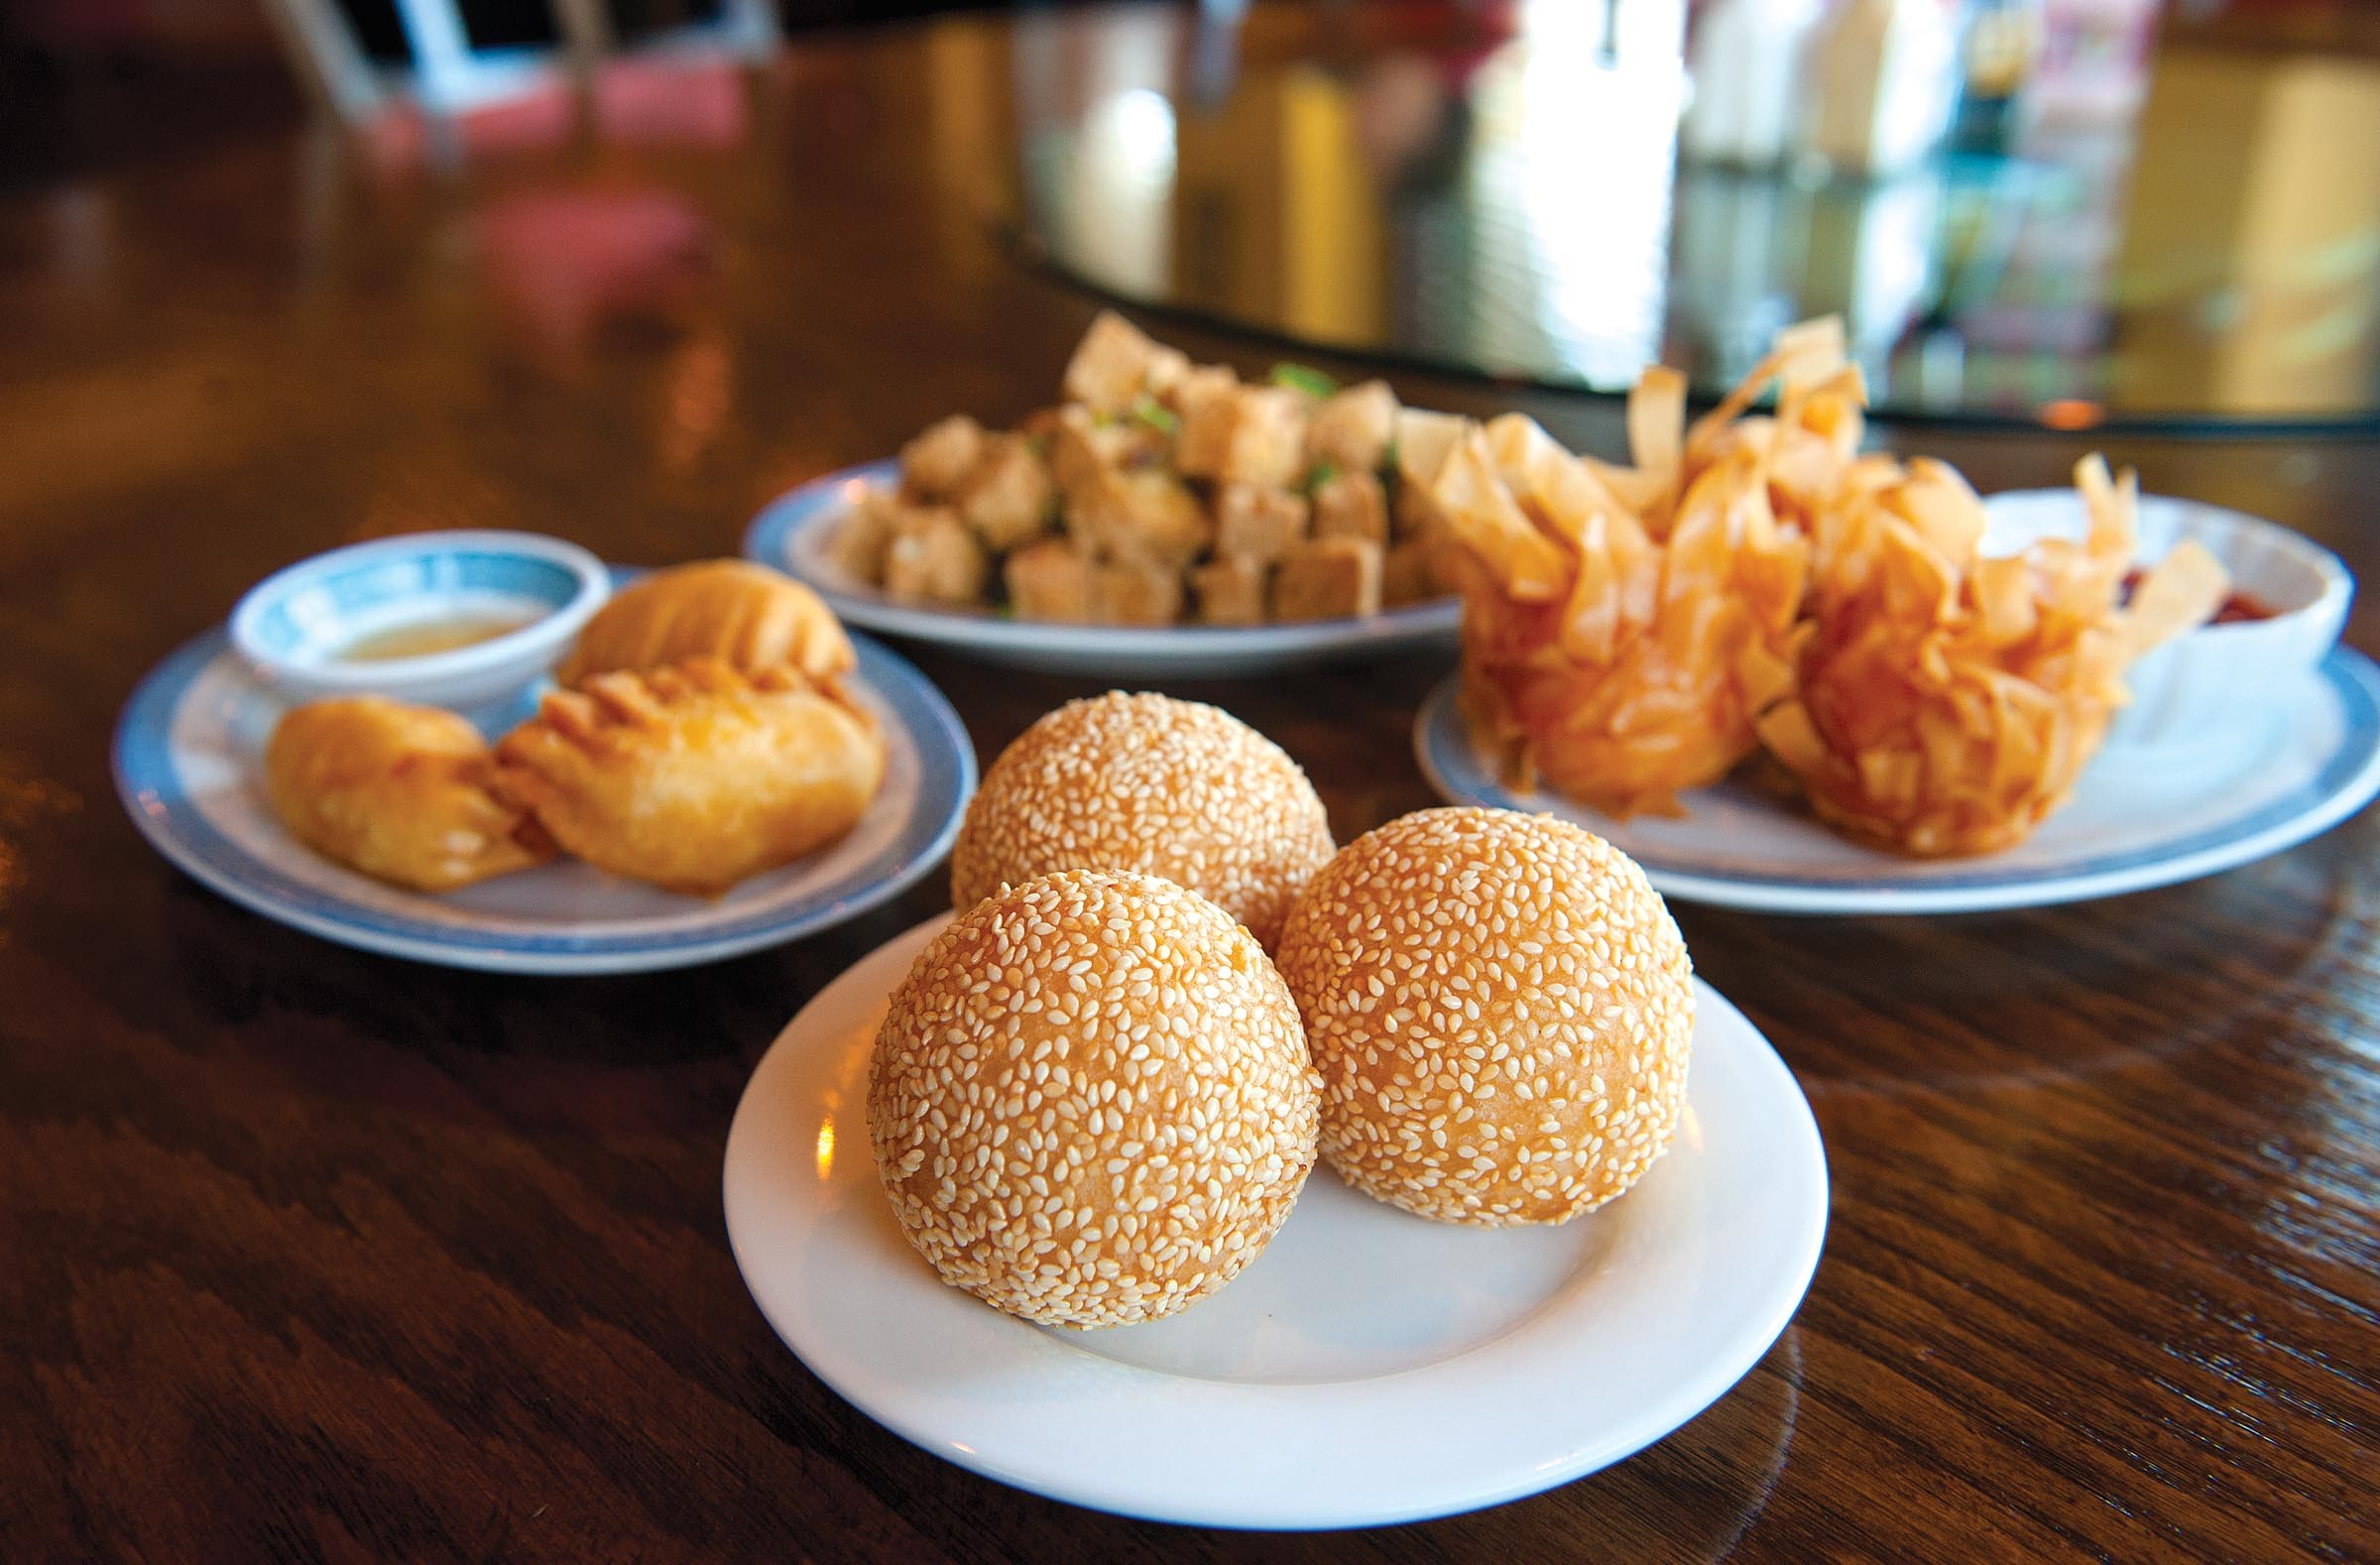 Sesame balls, shrimp balls, fried shrimp and cheese dumplings and salt and pepper diced tofu bring pleasure from the cart at Queen's Dim Sum on West Broad Street. - SCOTT ELMQUIST